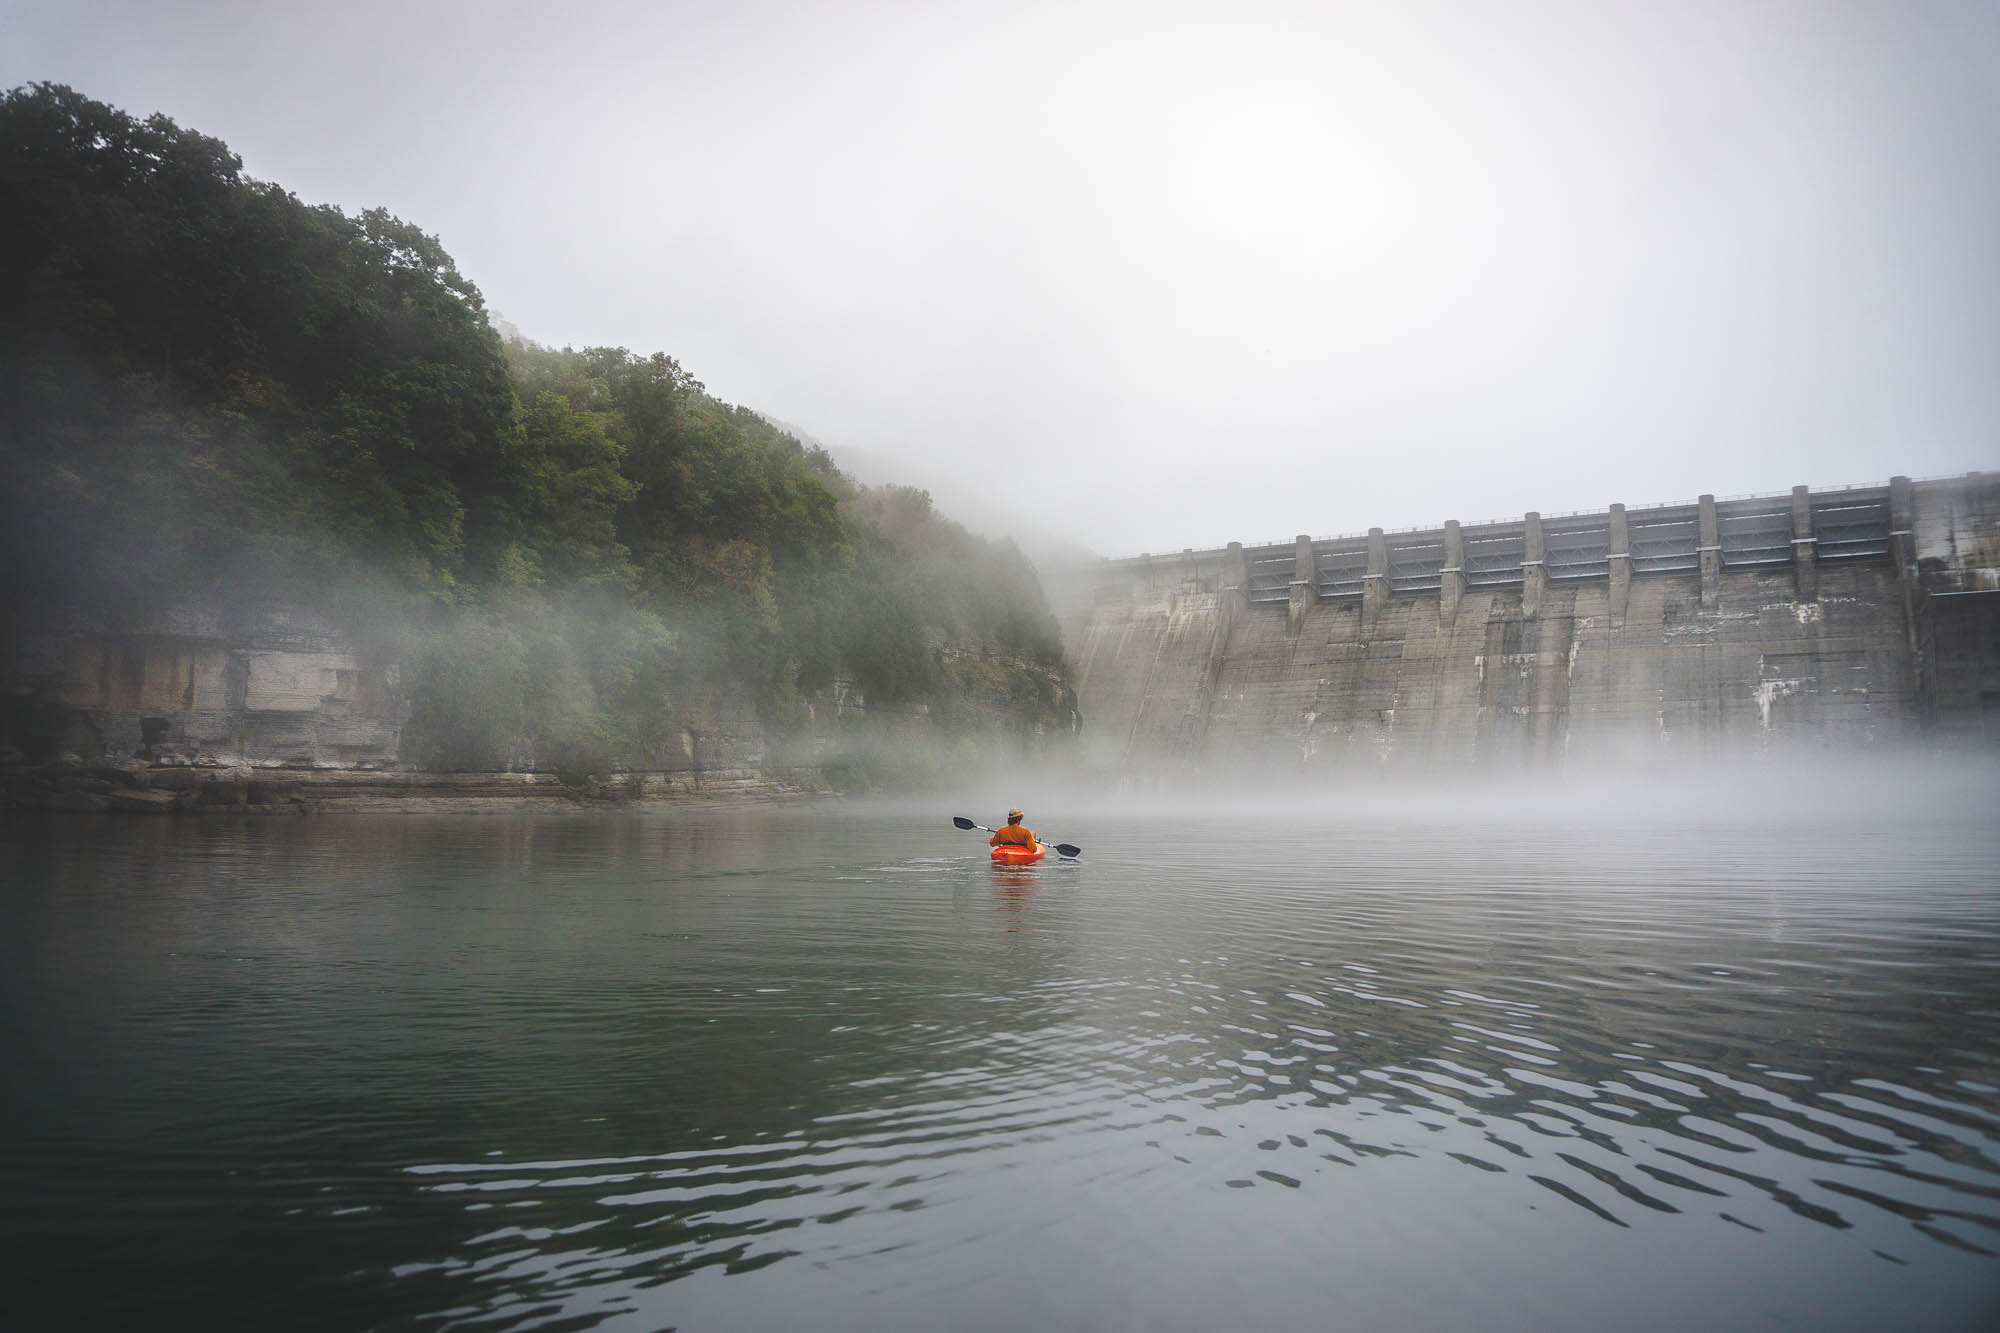 Appalachia_River_Adventure_2016_Compressed_for_Social-6.jpg